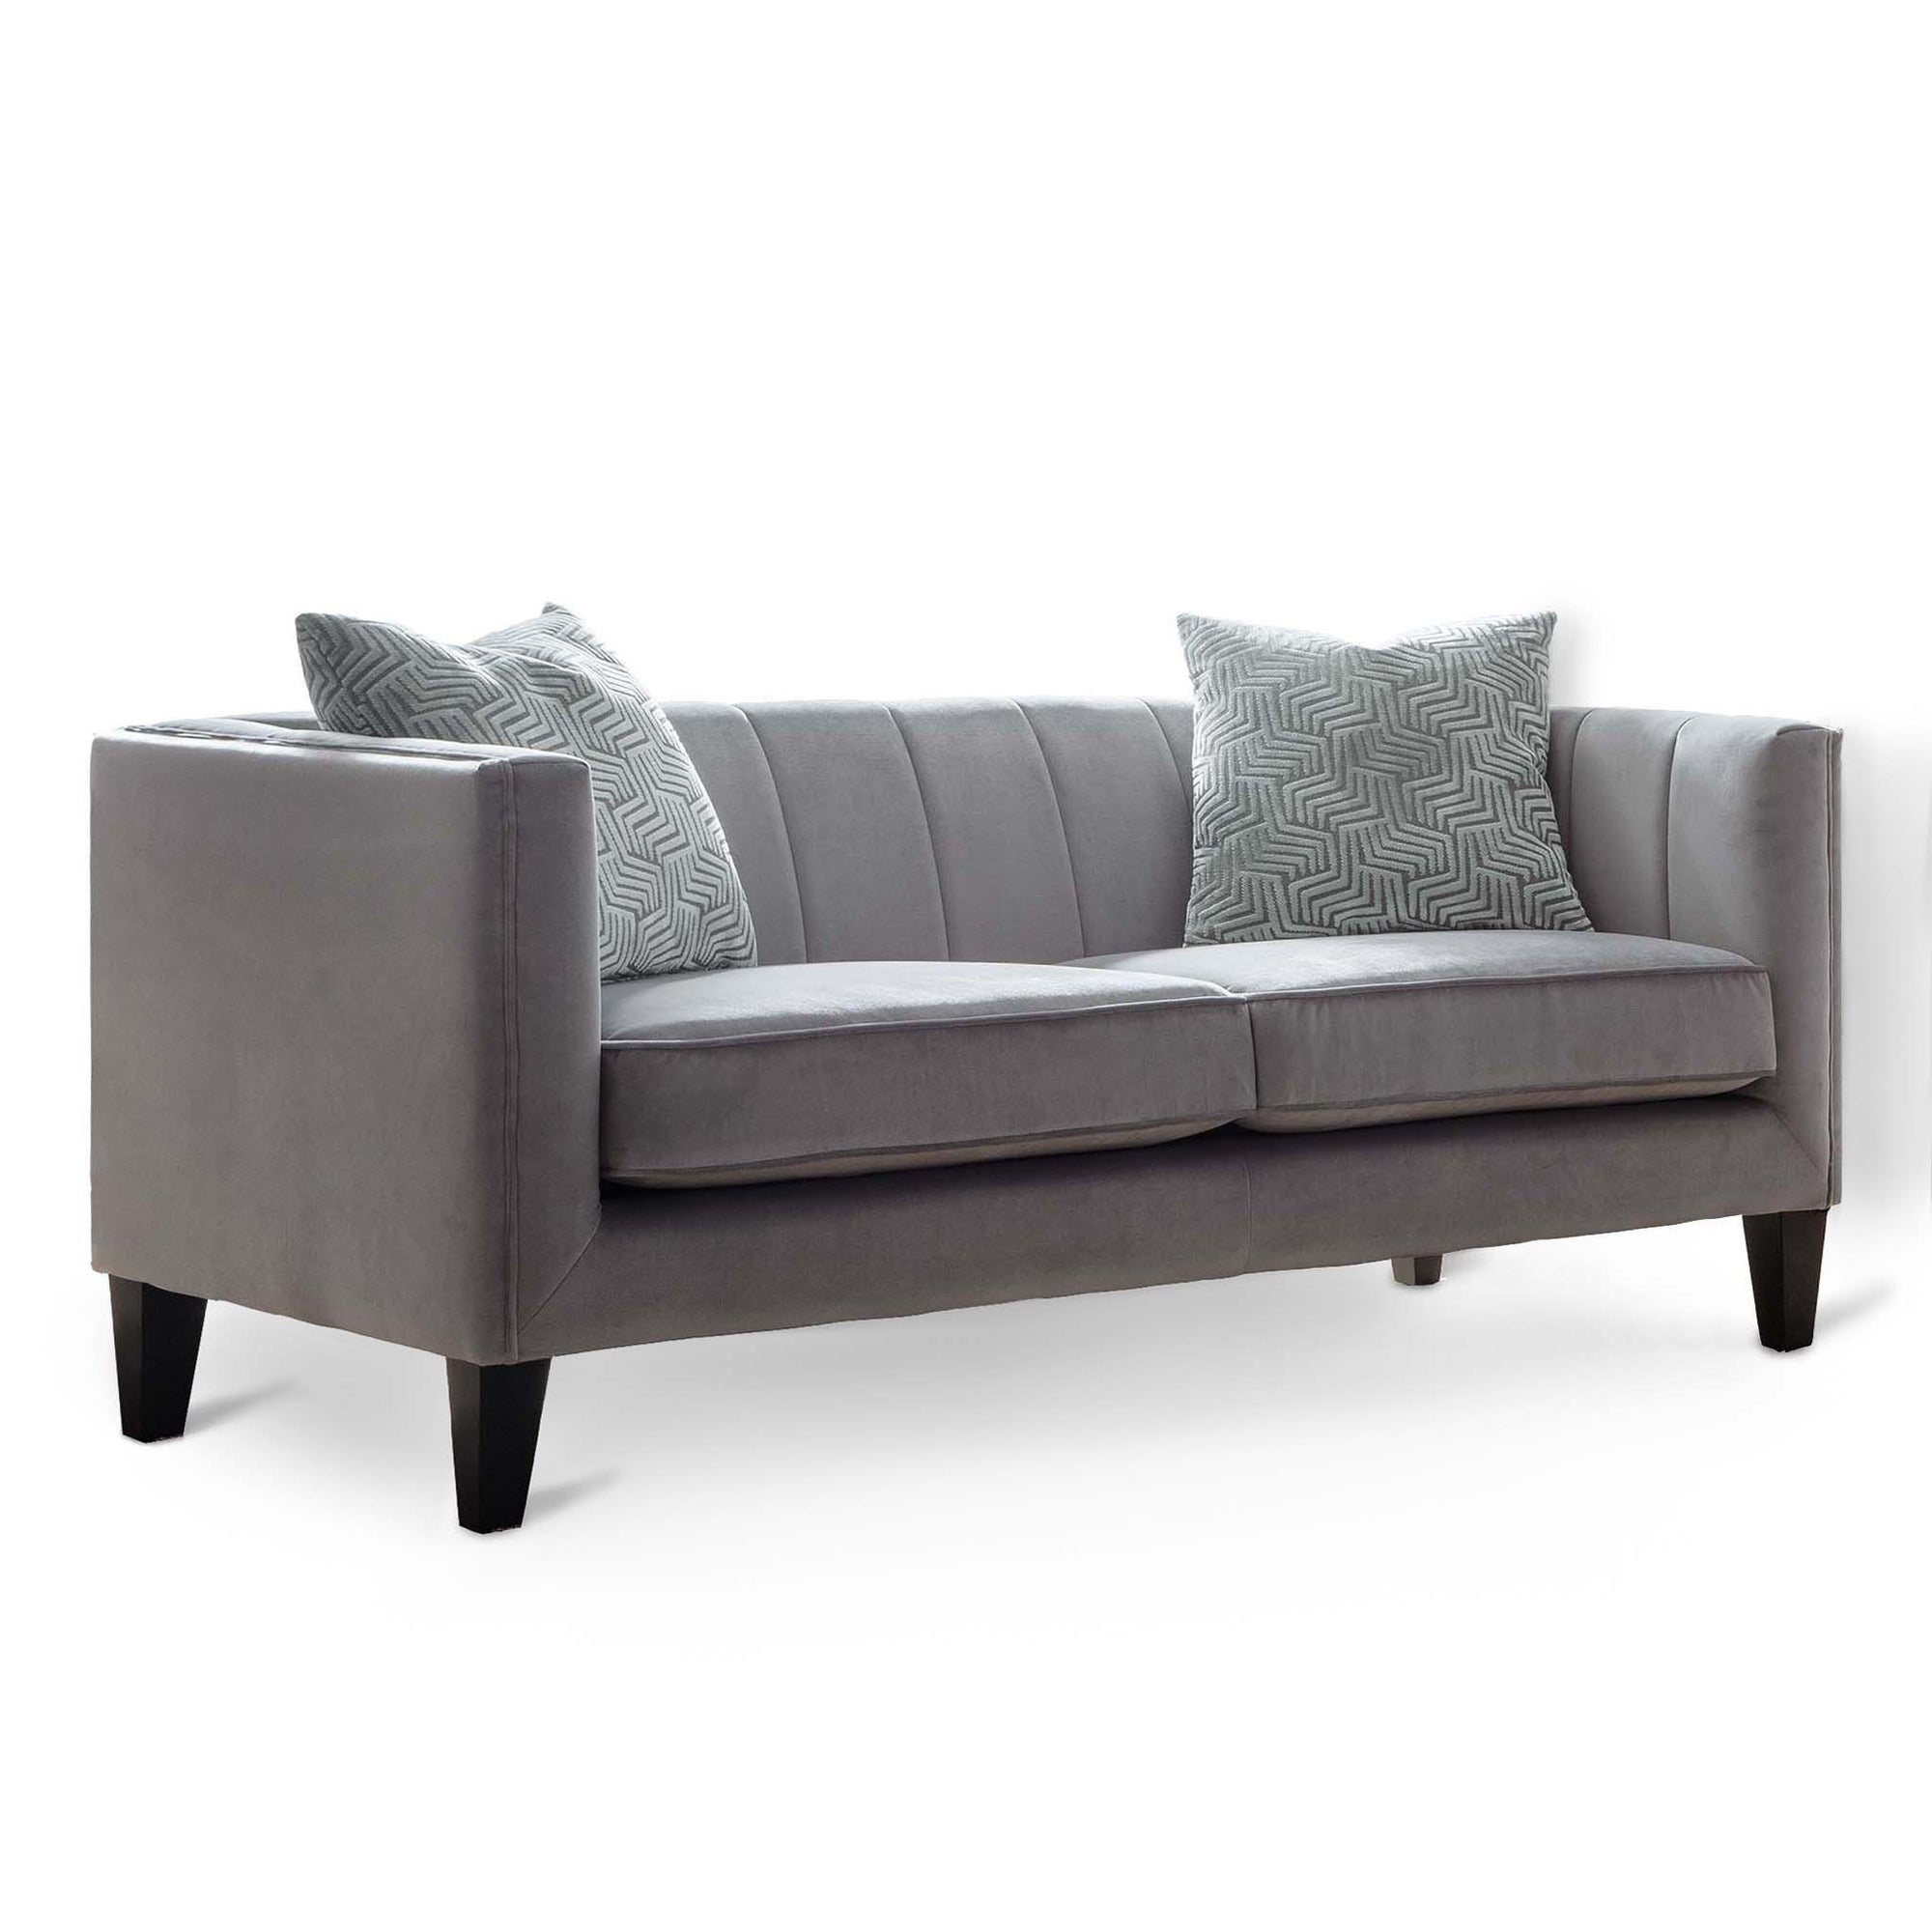 Savana Grey Velvet 2 Seater Sofa by Roseland Furniture